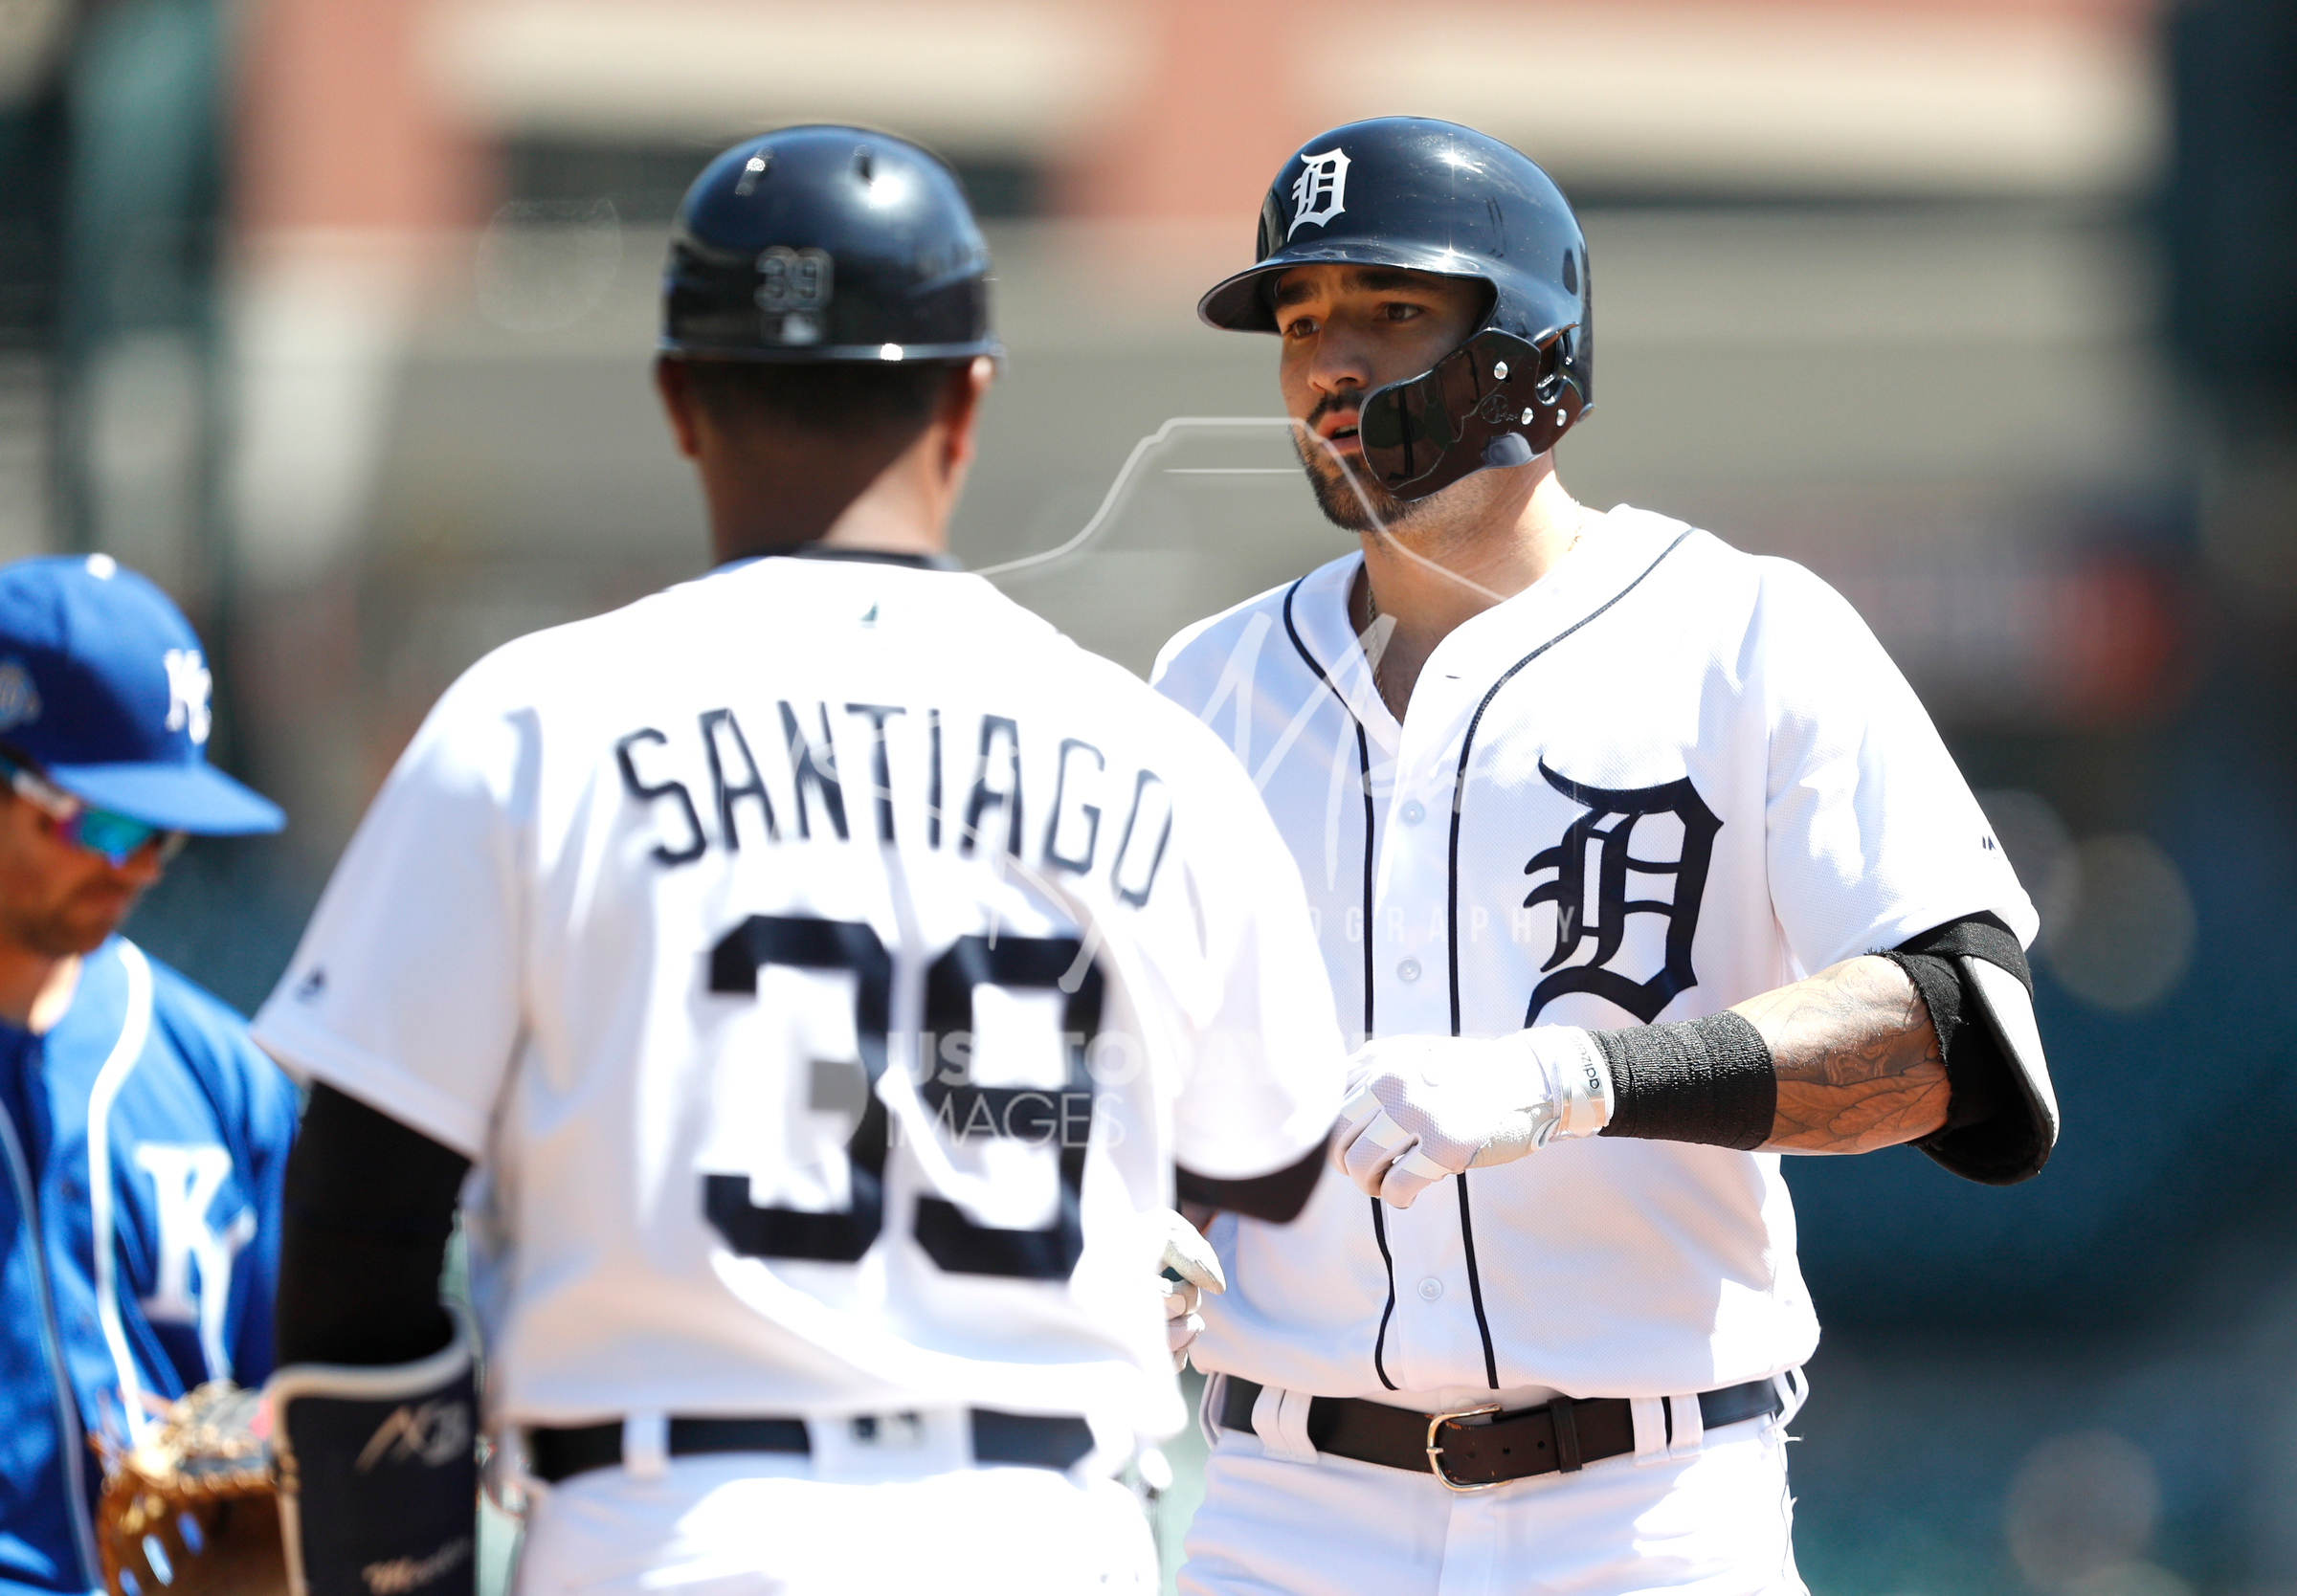 Apr 22, 2018; Detroit, MI, USA; Detroit Tigers right fielder Nicholas Castellanos (9) stands next to first base coach Ramon Santiago (39) after getting a hit for a single during the first inning against the Kansas City Royals at Comerica Park. Mandatory Credit: Raj Mehta-USA TODAY Sports